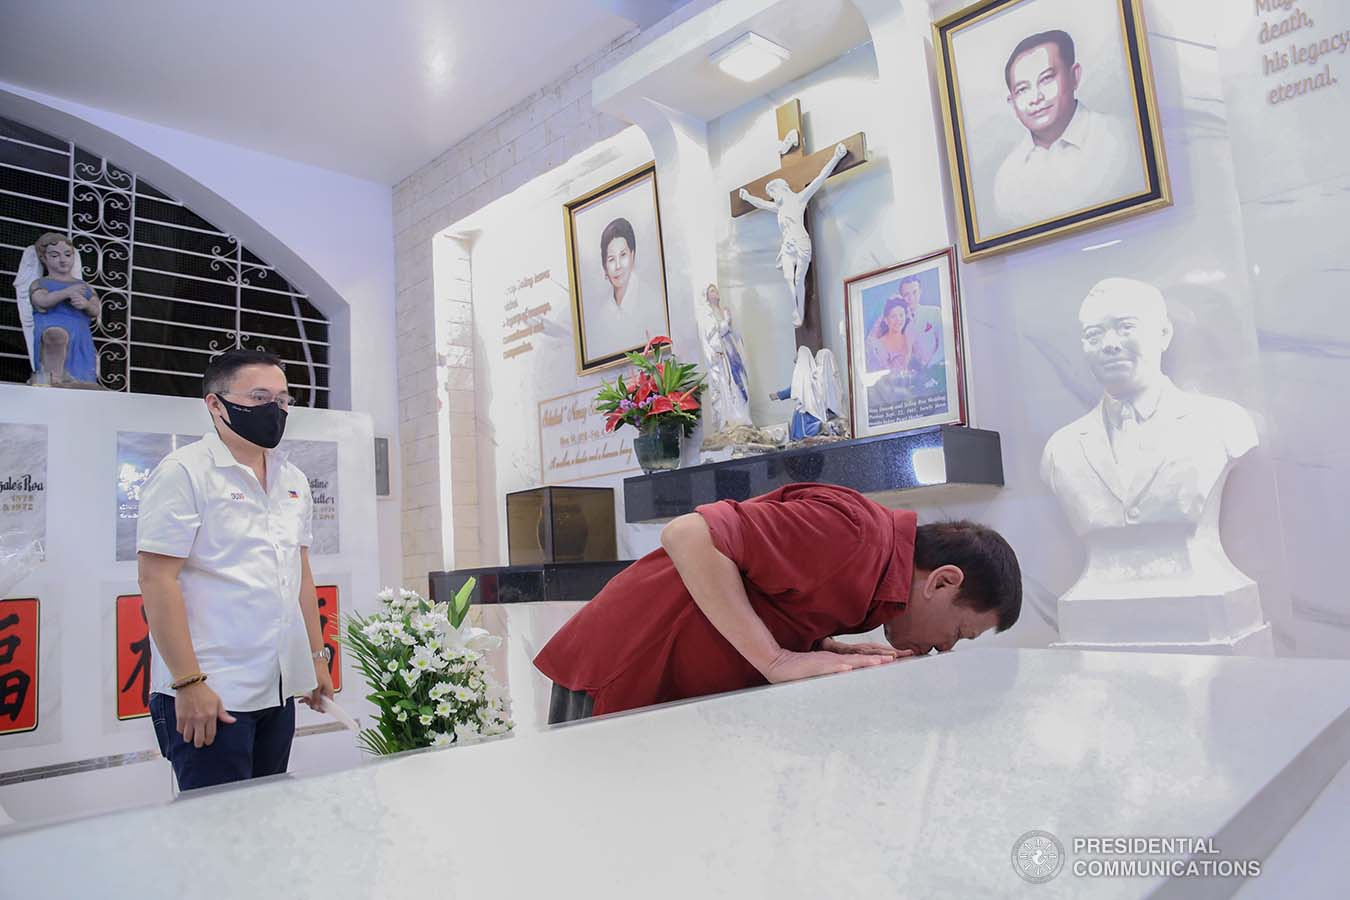 President Rodrigo Roa Duterte kisses the resting place of his father, Vicente Duterte, the former governor of then undivided Davao Province, during his visit at the Roman Catholic Cemetery in Davao City on February 21, 2021. The President consistently visits his departed loved ones even when he was still mayor of Davao City. ALBERTO ALCAIN/ PRESIDENTIAL PHOTO